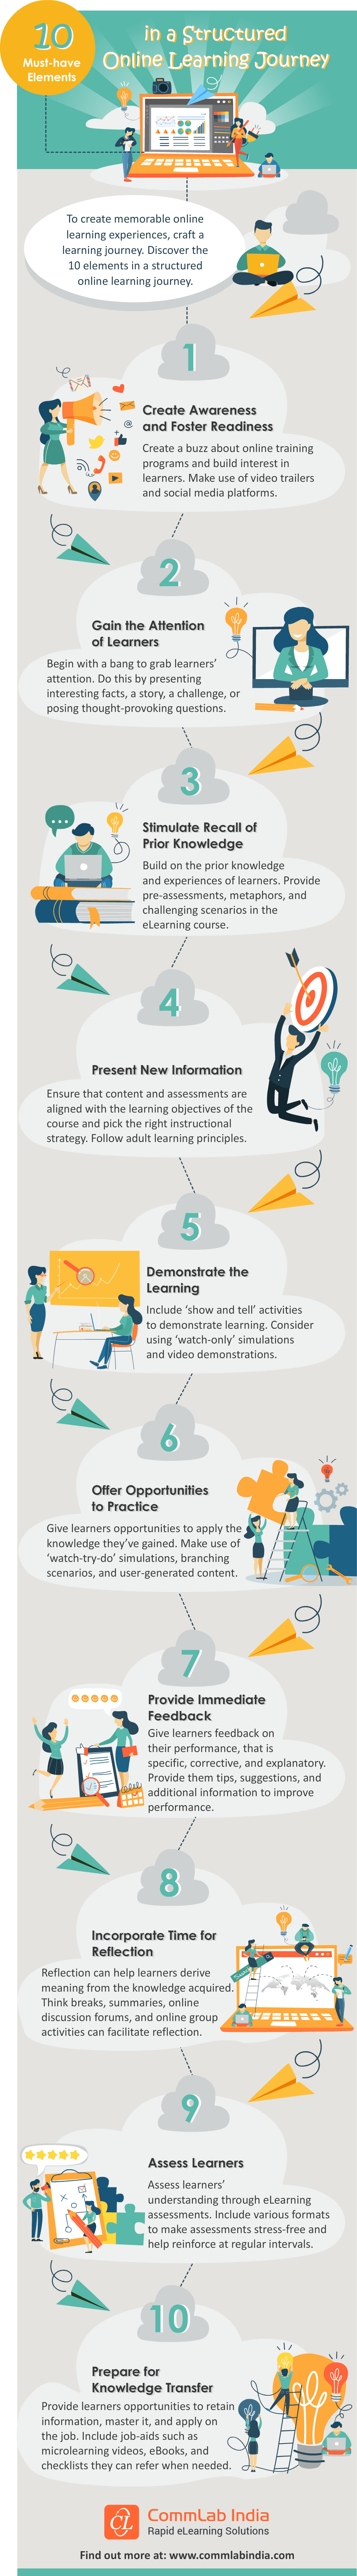 10 Must-have Elements in a Structured Online Learning Journey [Infographic]